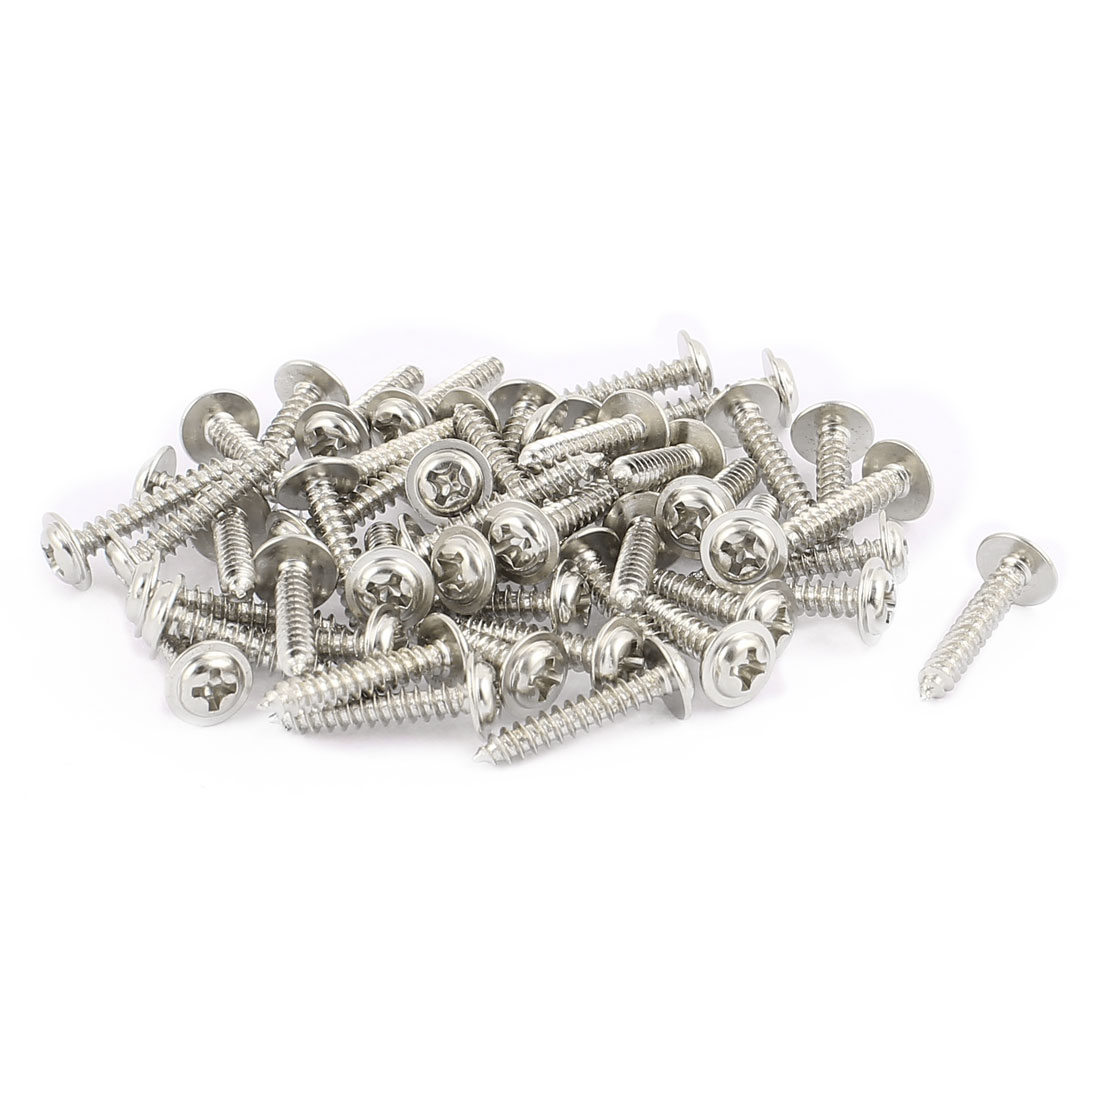 50pcs 16x3 Stainless Steel Phillips Head Self-Tapping Screw with Shoulder Washer